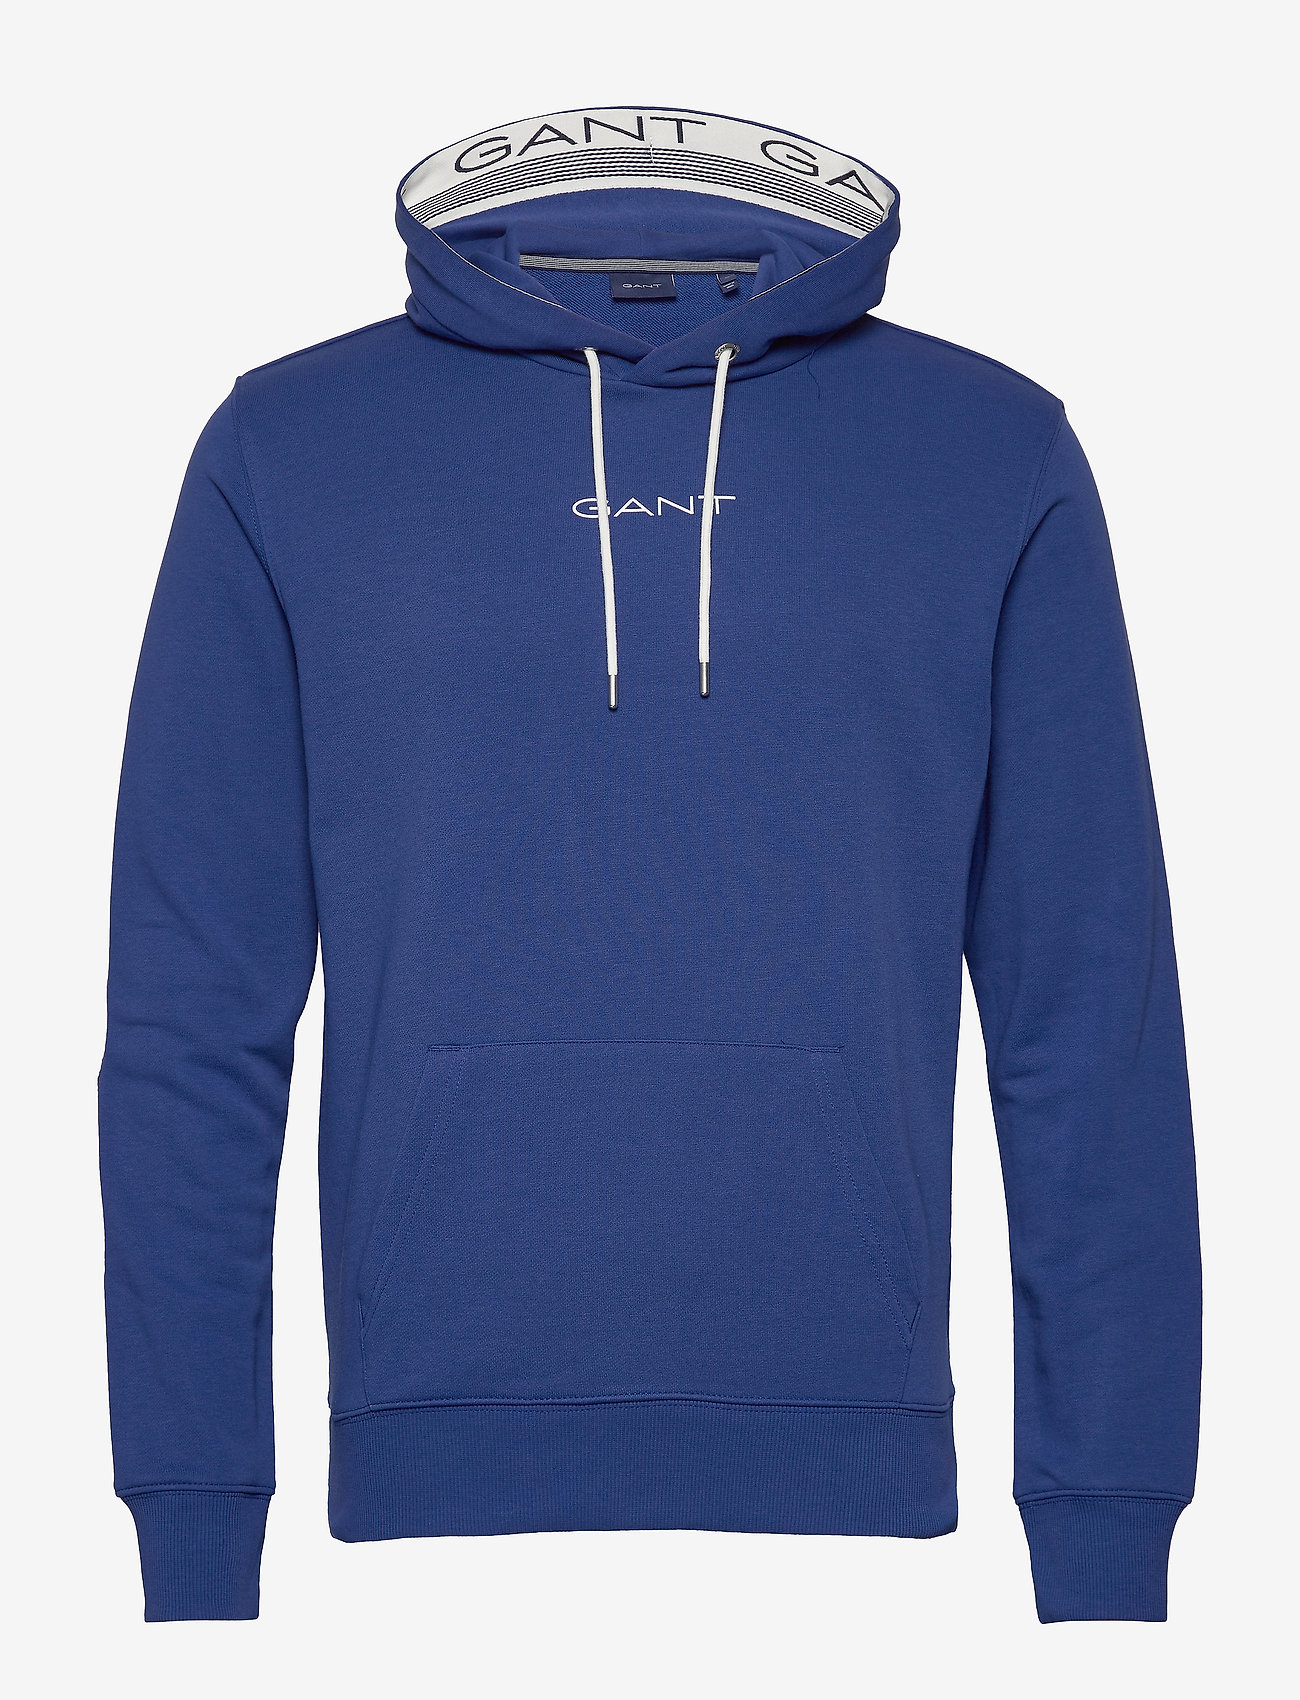 13 Stripes Sweat Hoodie für Herren GANT